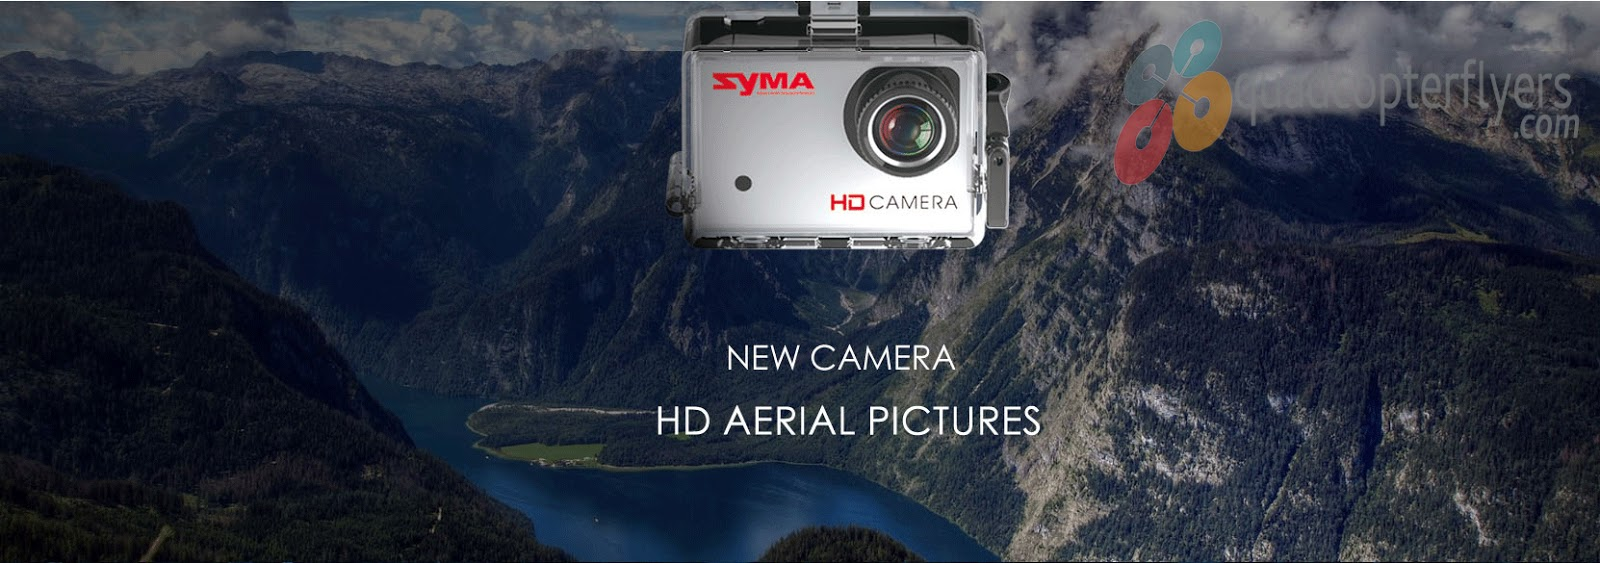 Syma X8g Quadcopter With Gopro Style Camera First Look. Symax8g5mphdcameragoprostyle. Wiring. Syma X8 Wiring Diagram At Scoala.co